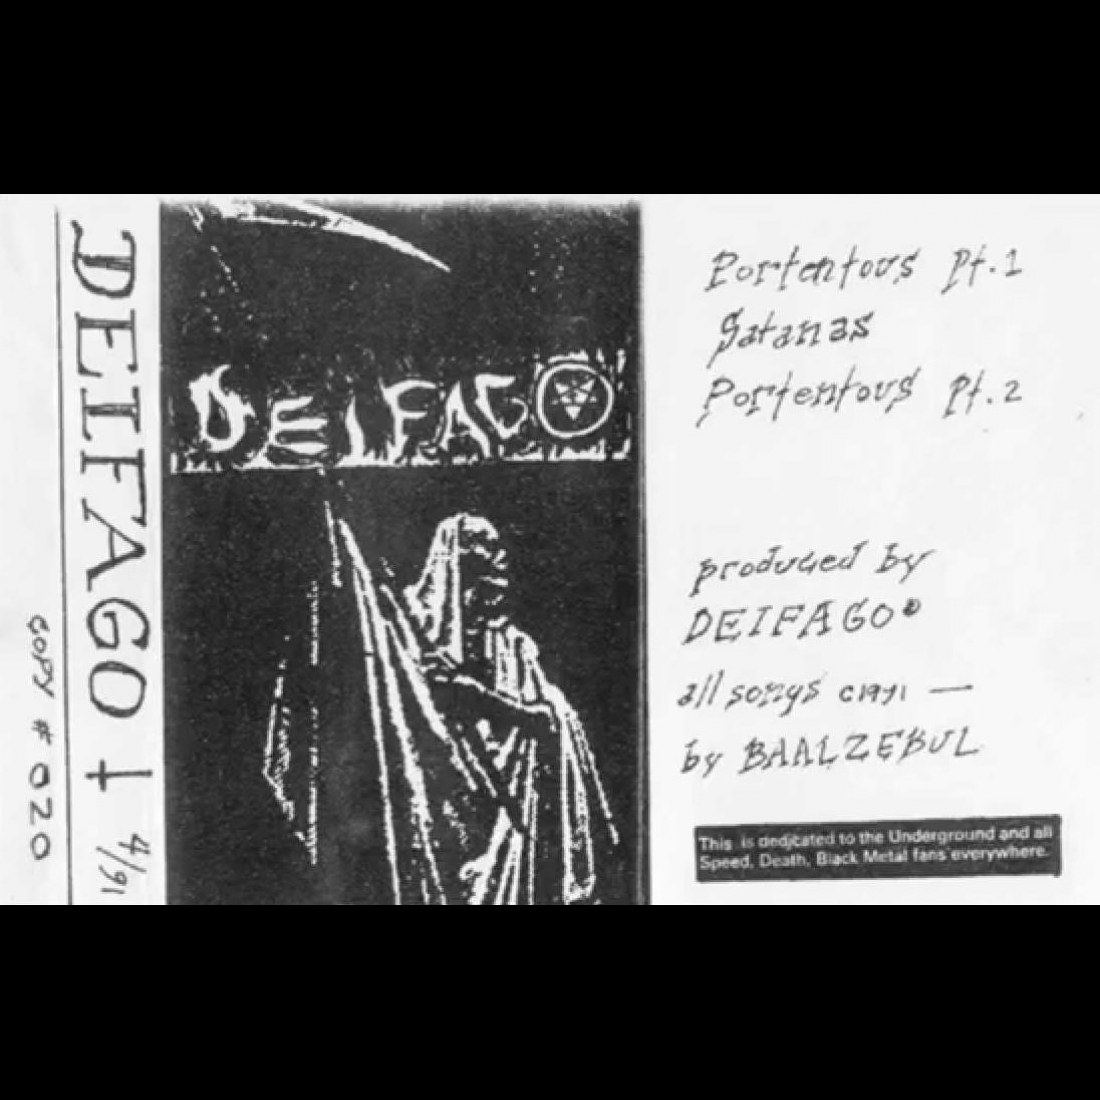 Review for Deiphago - Demo 1991